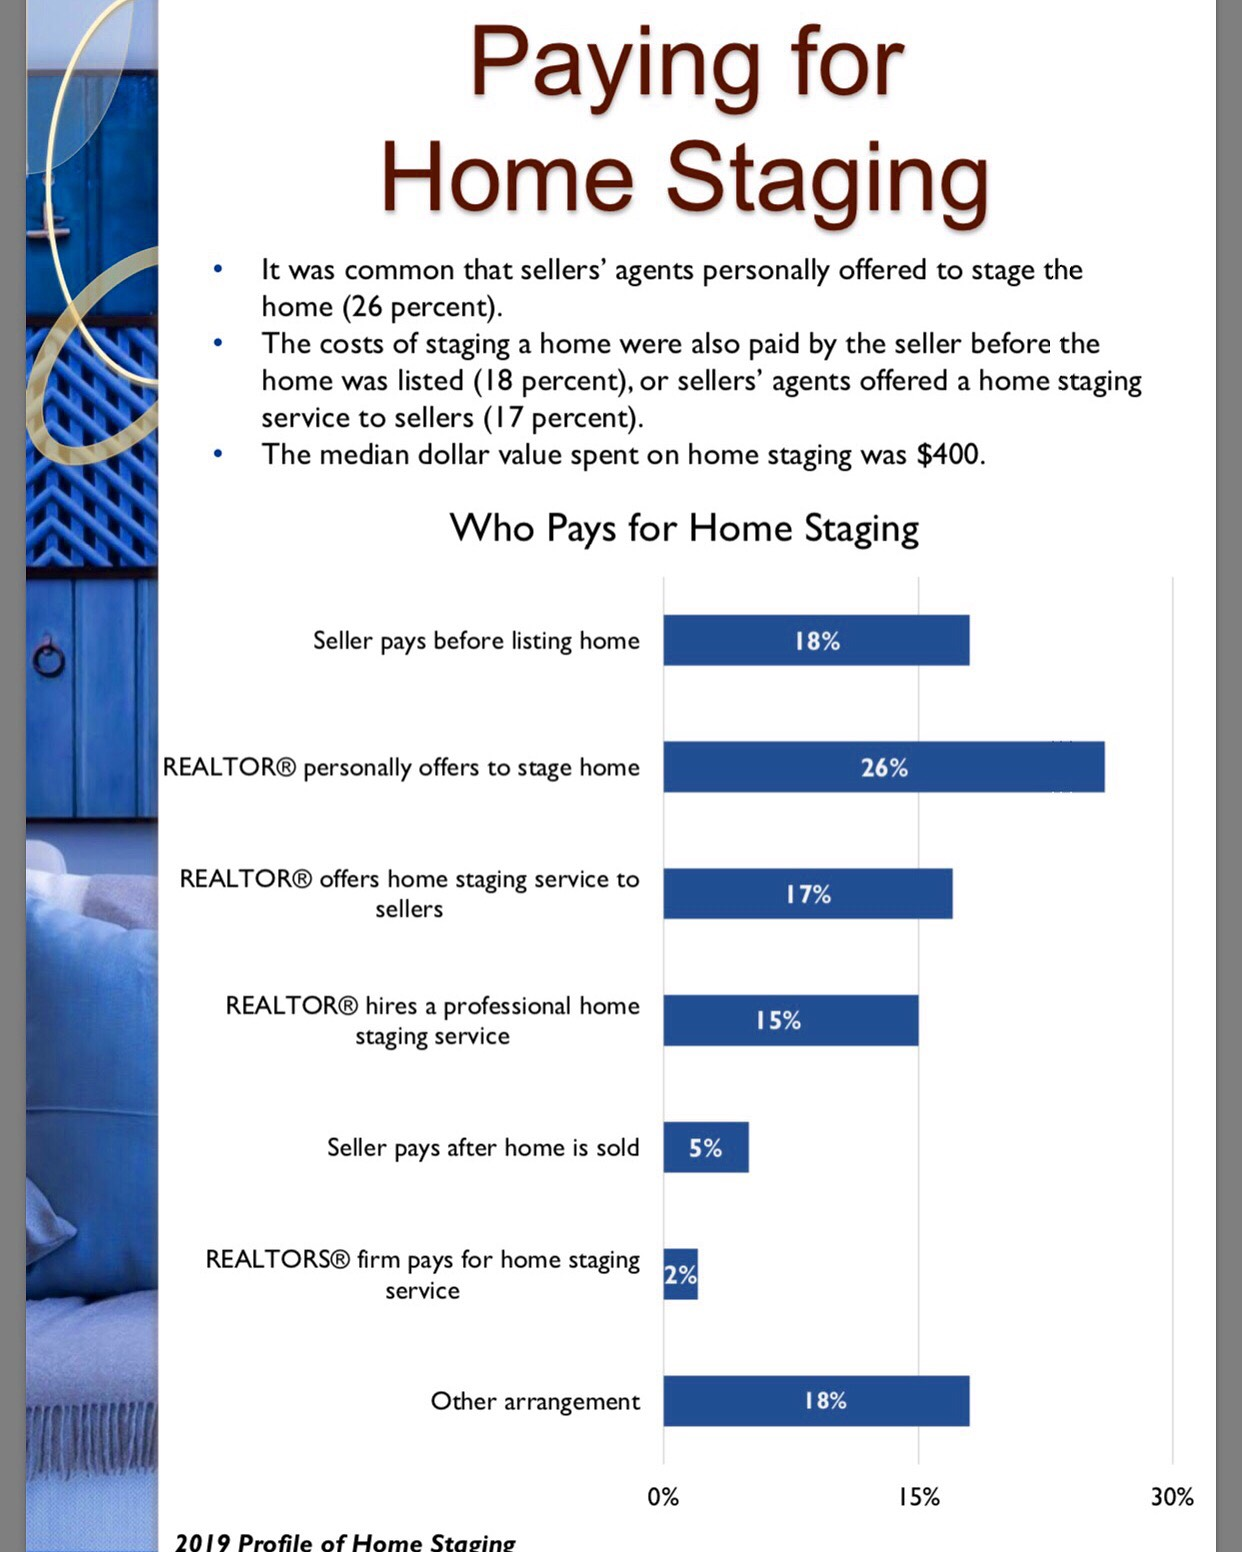 Paying for Home Staging